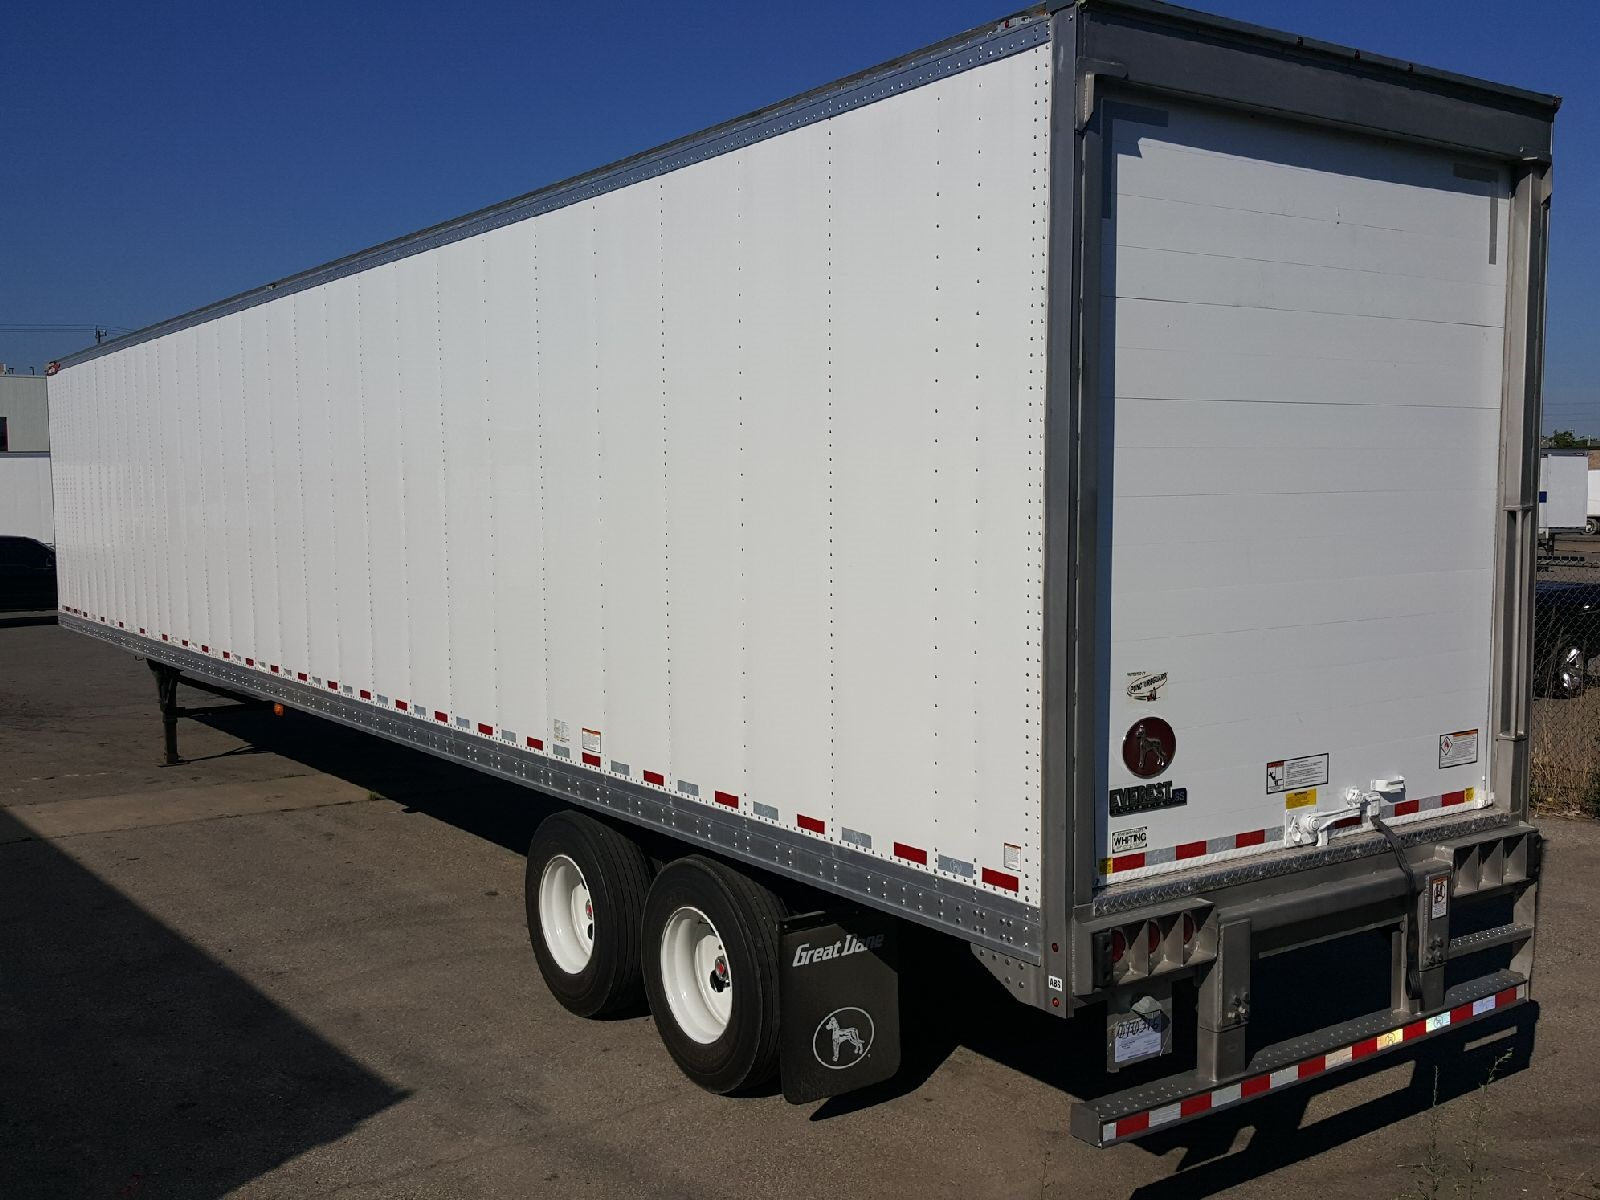 2020 GREAT DANE EVEREST TANDEM ROLL UP DOOR REEFER TRAILERS